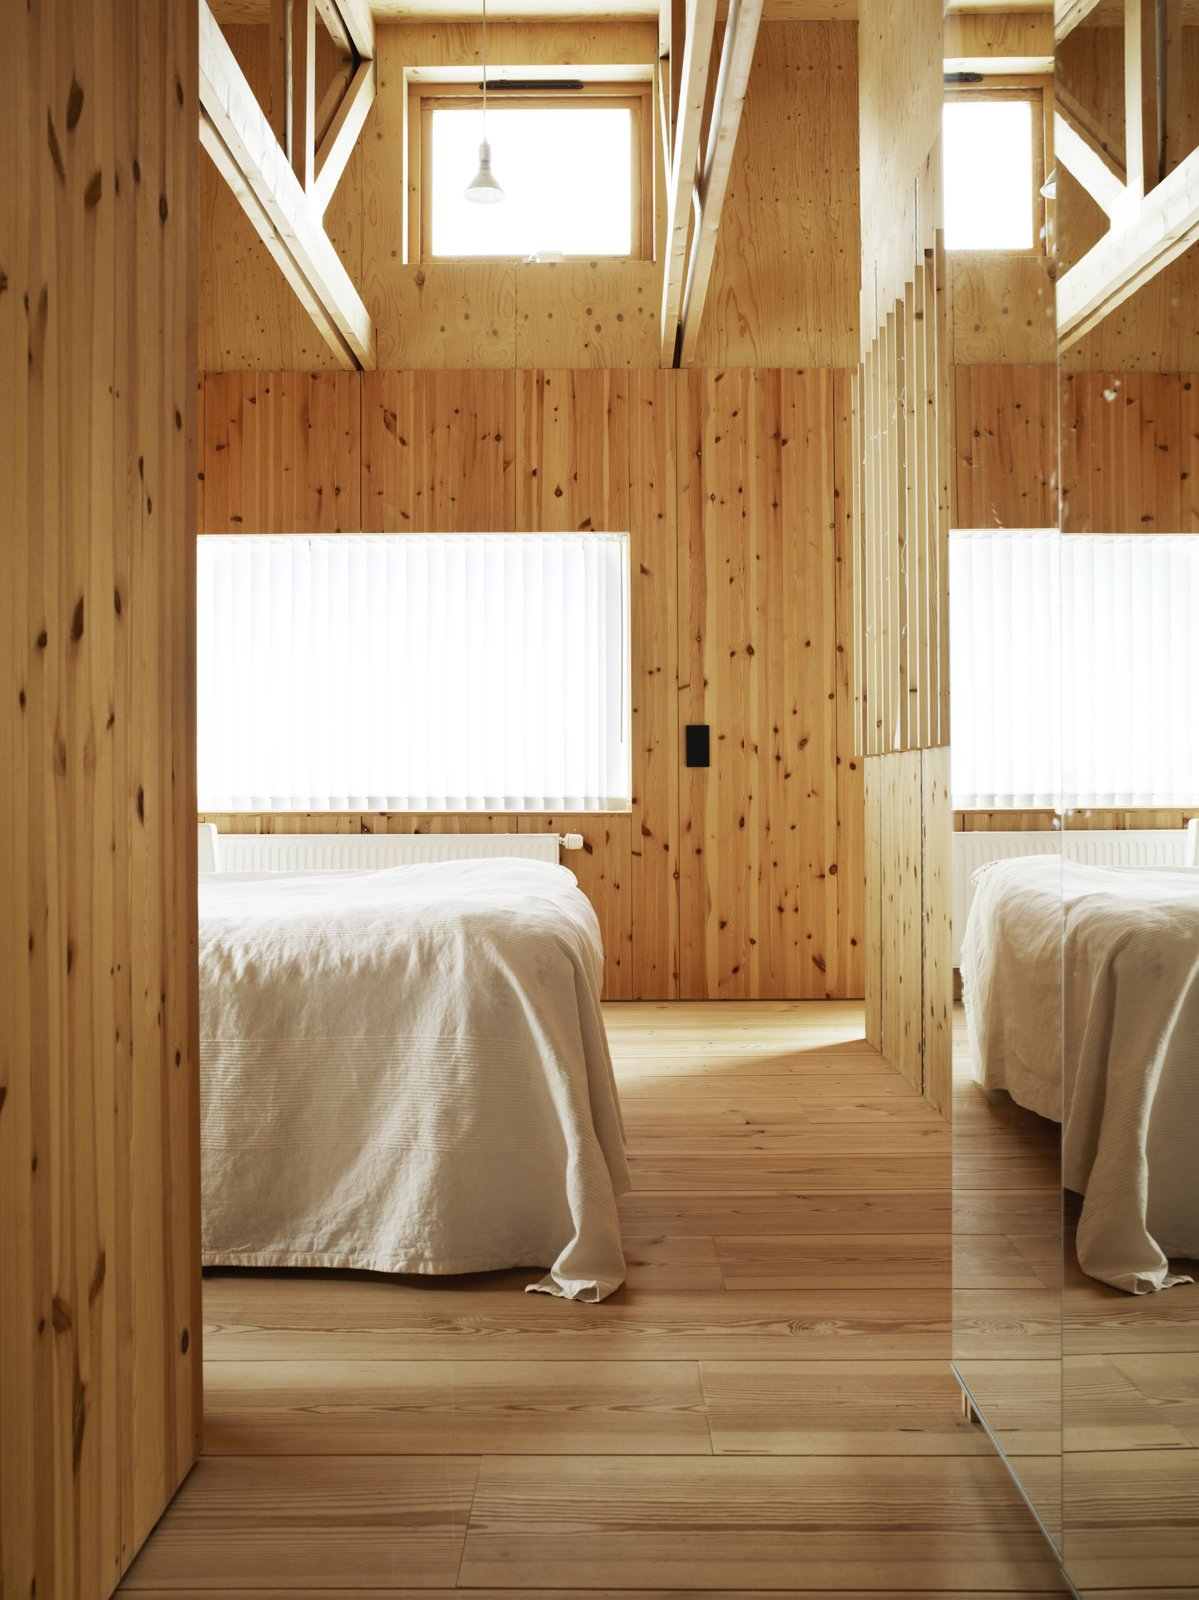 The white linens appear almost ghostly against the natural grain of the wood and muted glow of the window's winter light. Tagged: Bedroom, Light Hardwood Floor, Bed, and Pendant Lighting.  Photo 9 of 11 in 10 Warm Wood Floors from Knotty by Nature